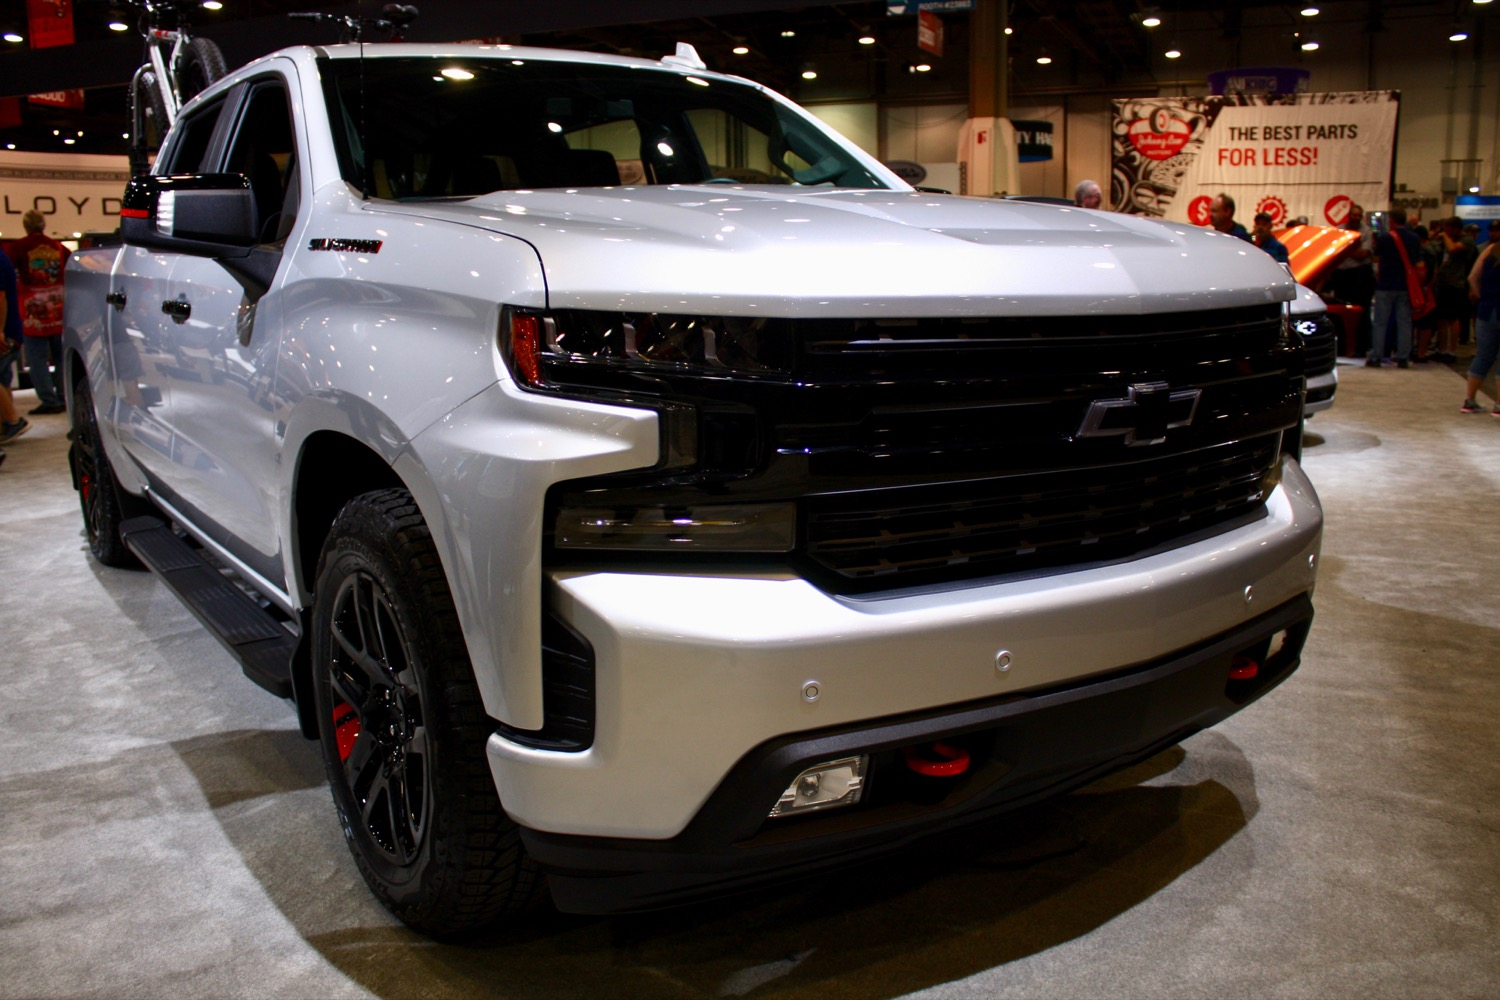 Silverado Redline Concept Going Into Production For 2021 2021 Chevrolet Silverado Problems, Parts, Packages